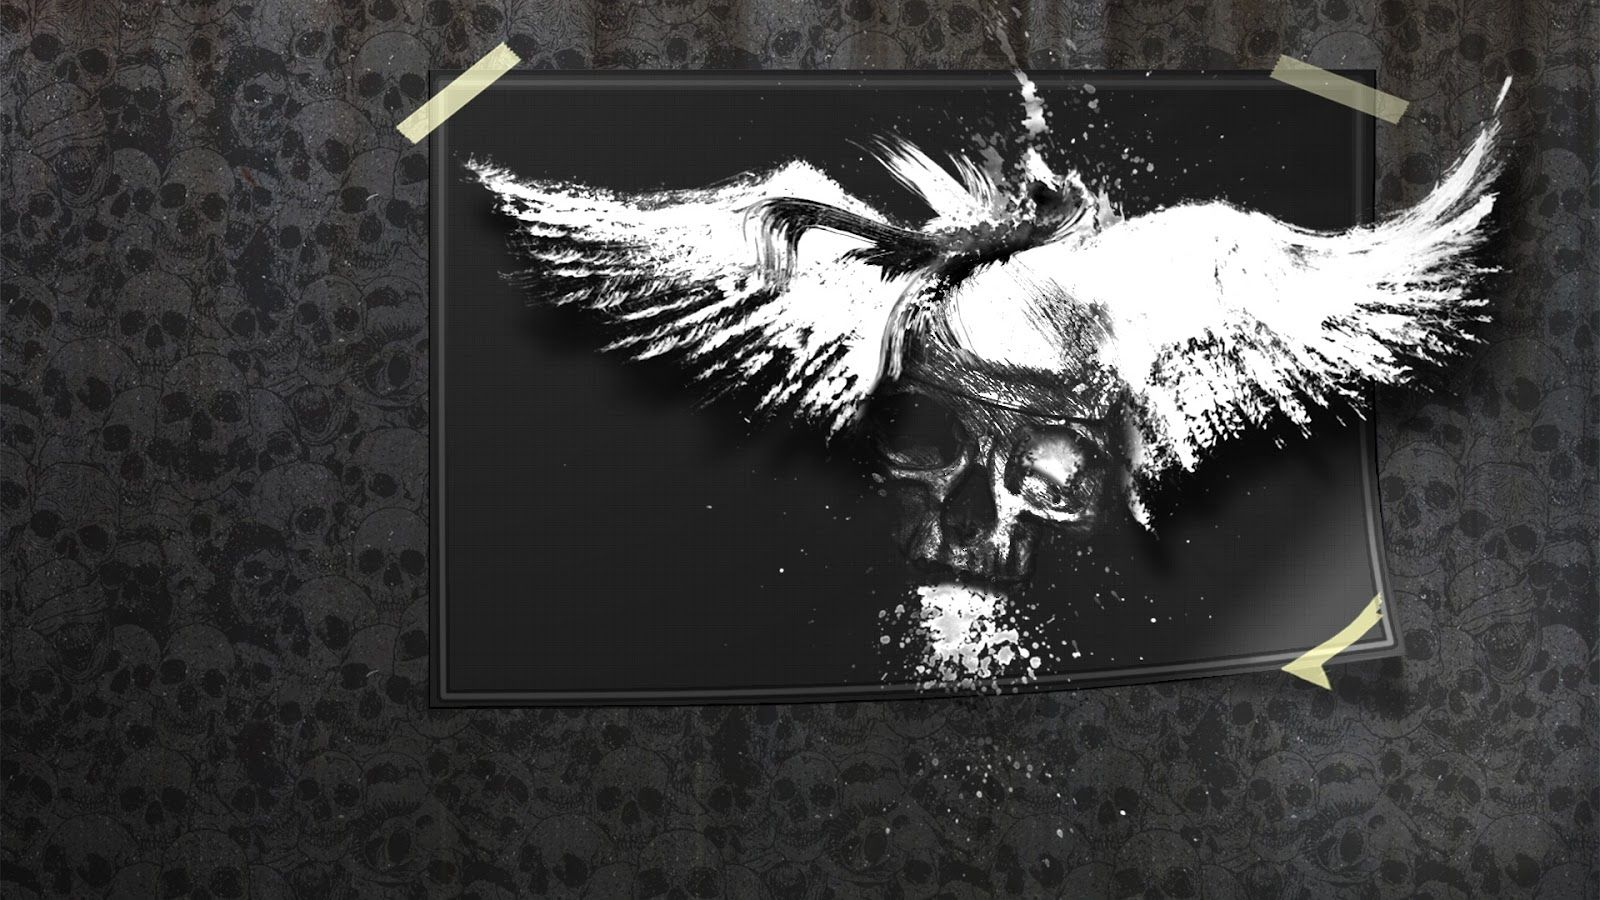 Abstract Art Black And White Animal Wallpaper Free